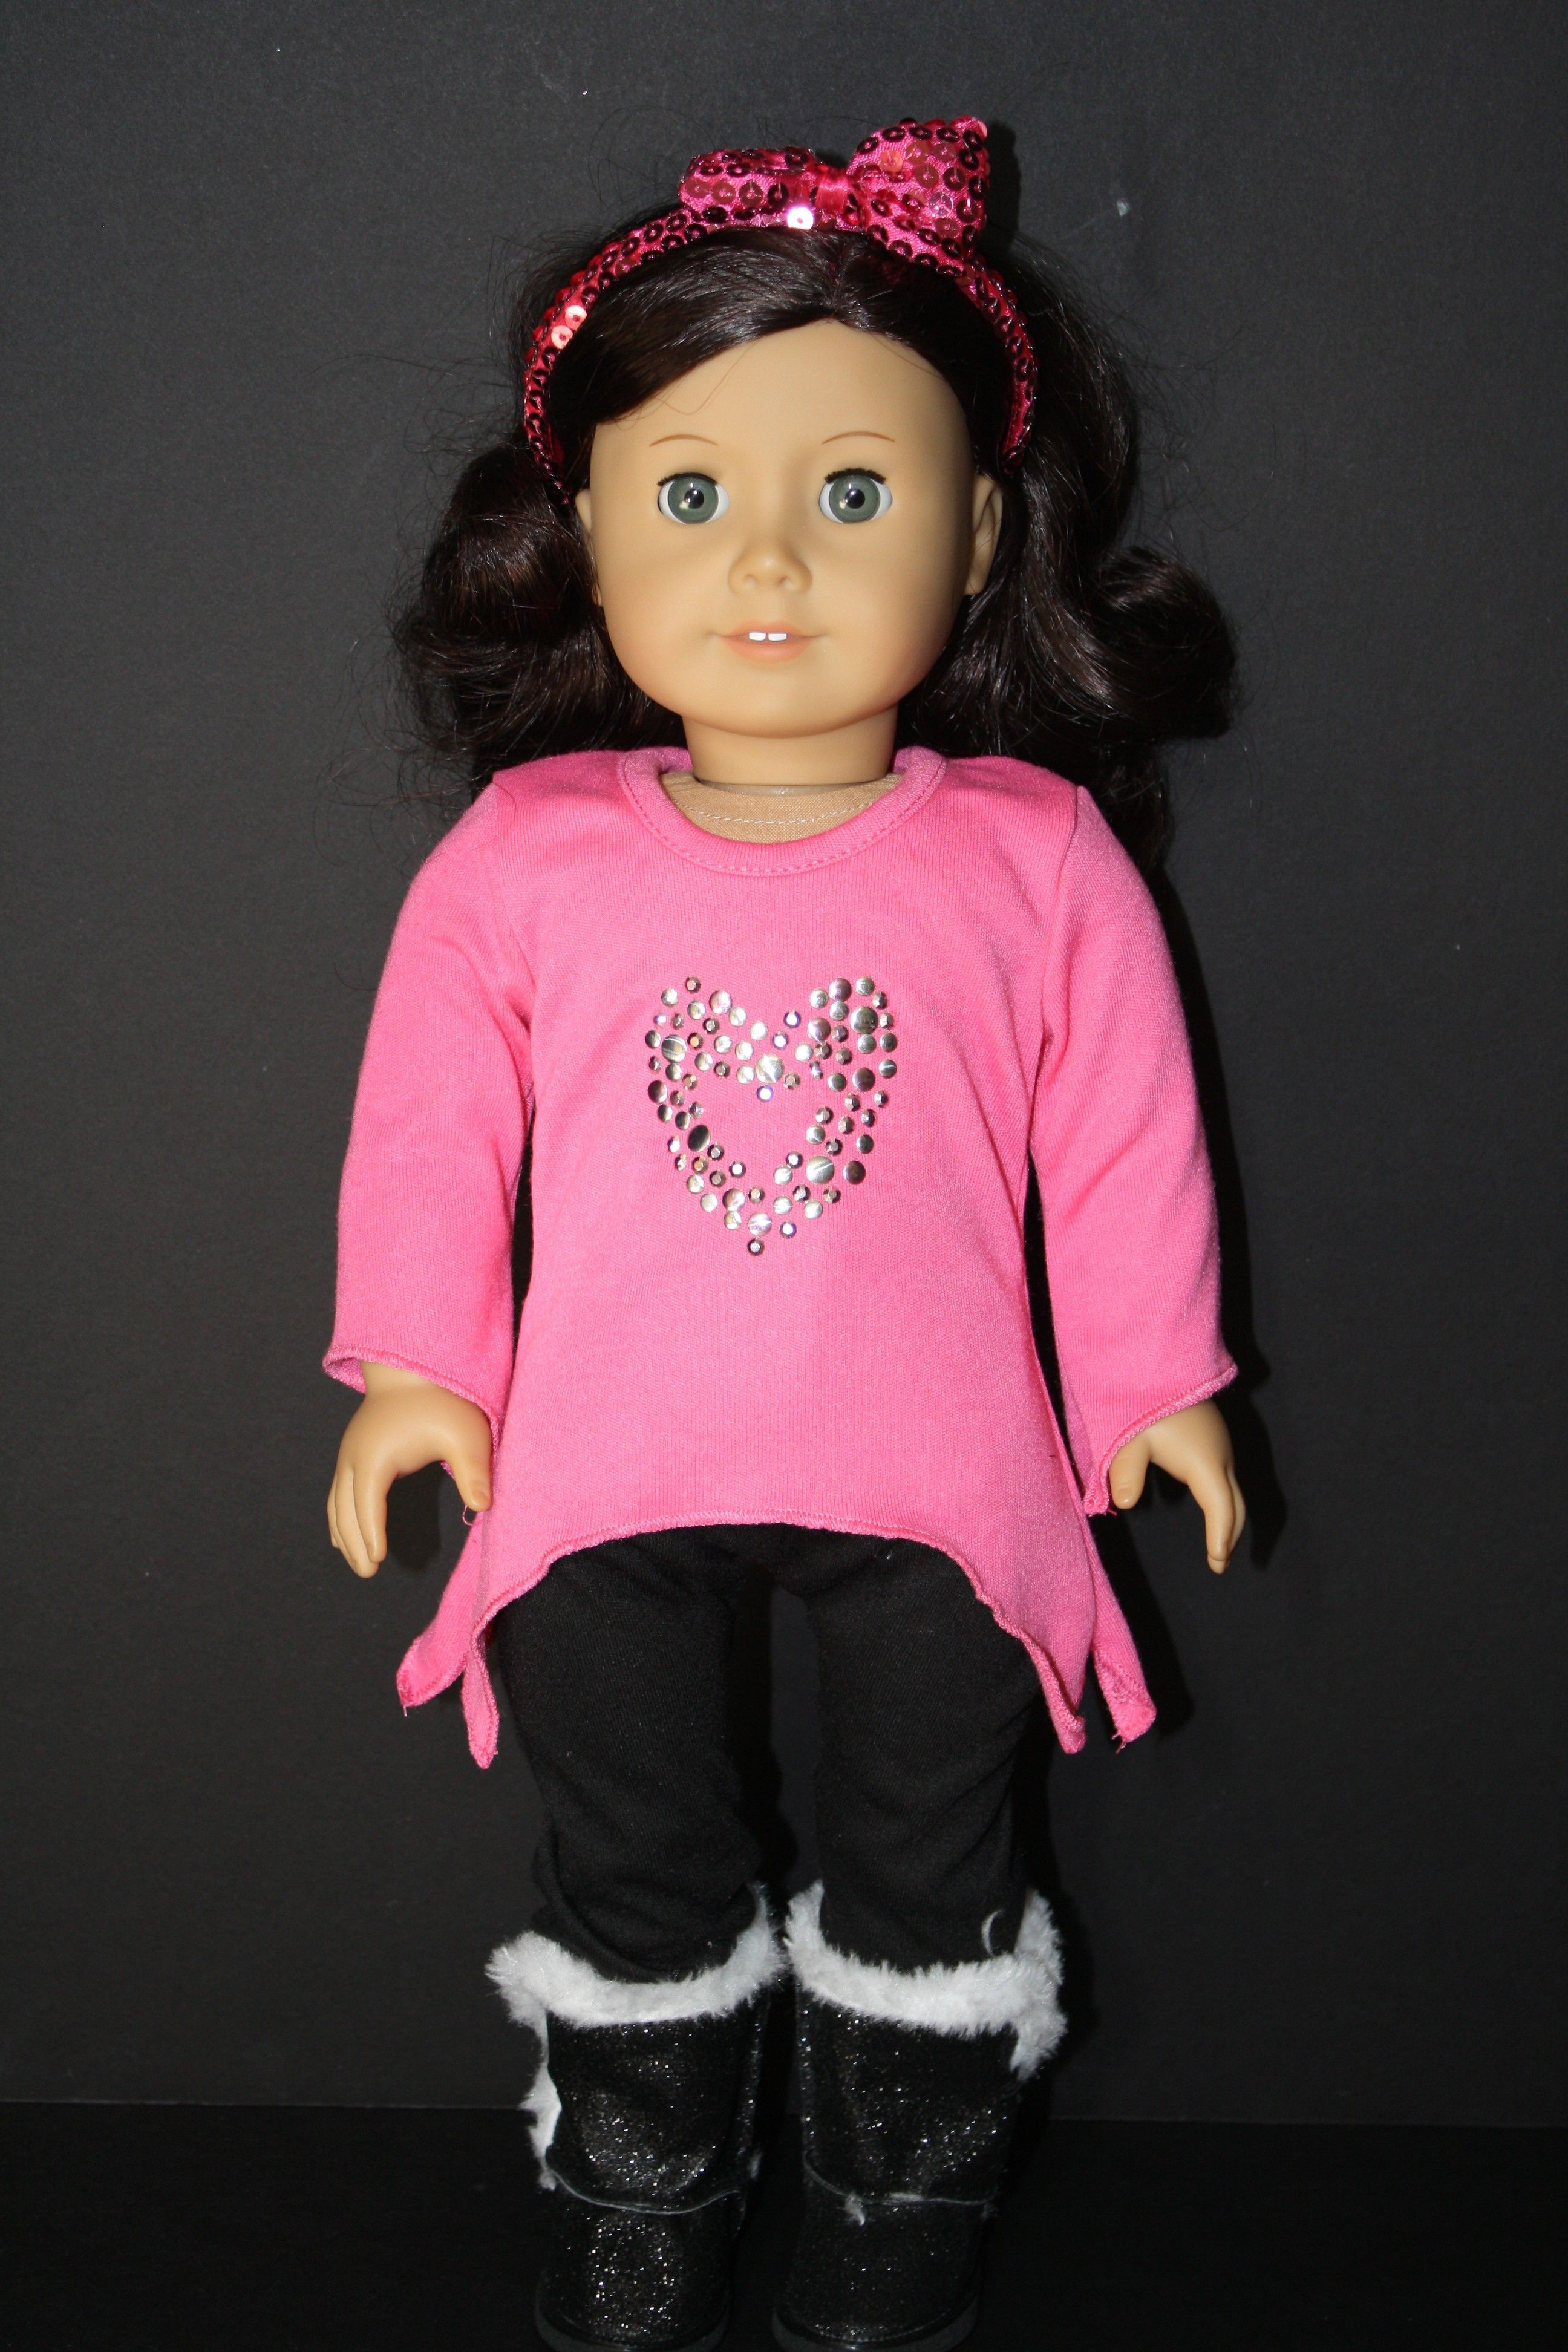 Black pants and pink long t style shirt with heart and glitter boots